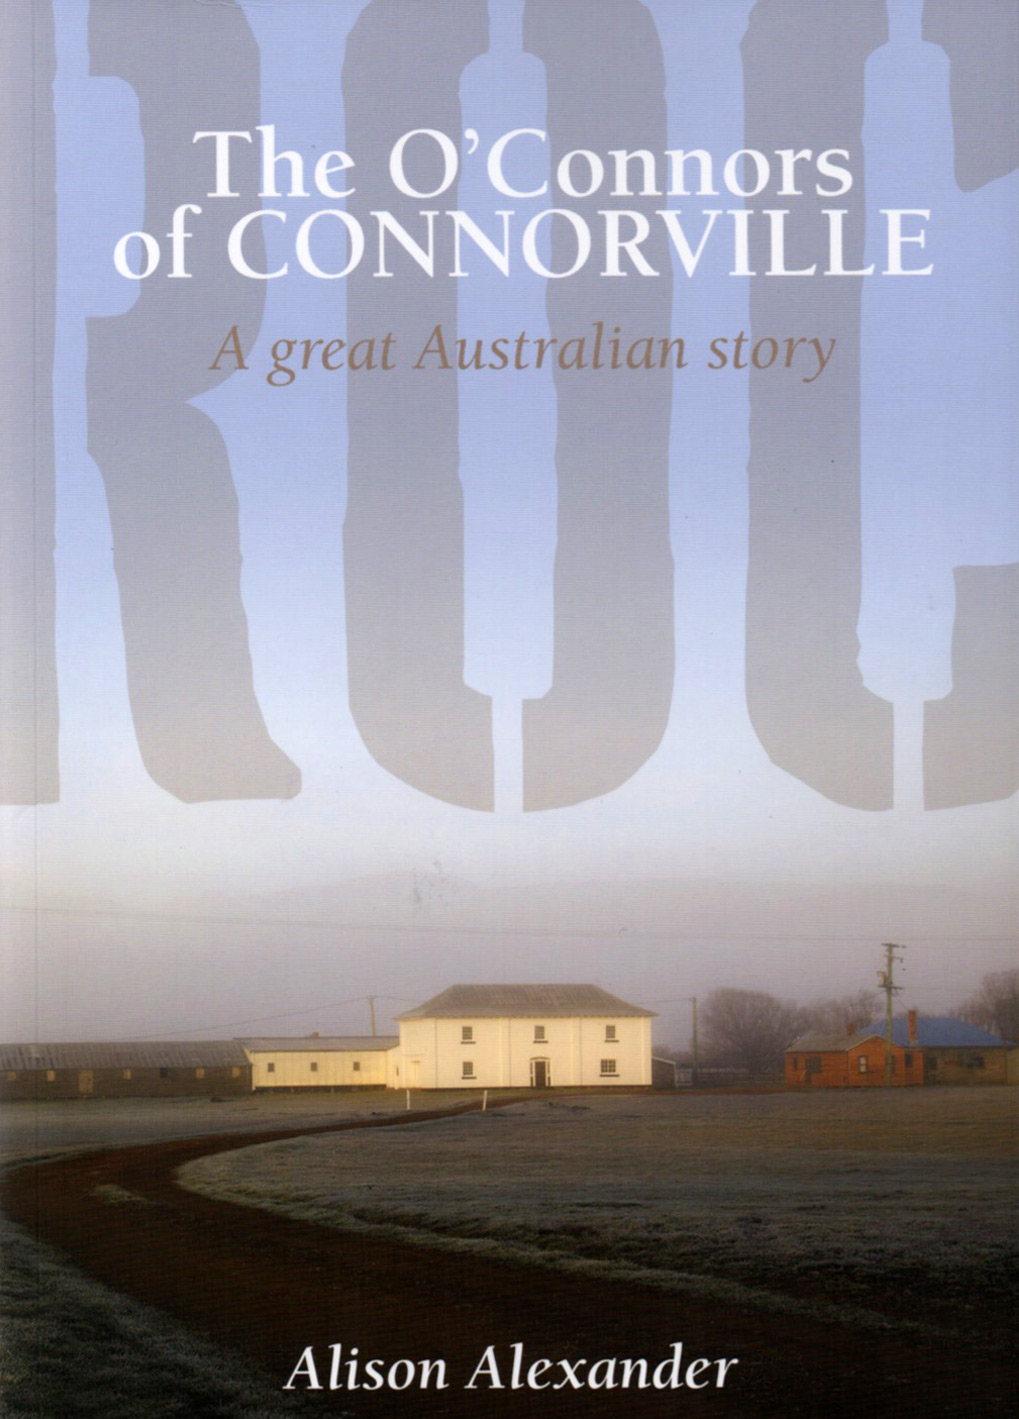 The O'Connors of Connorville - softcover